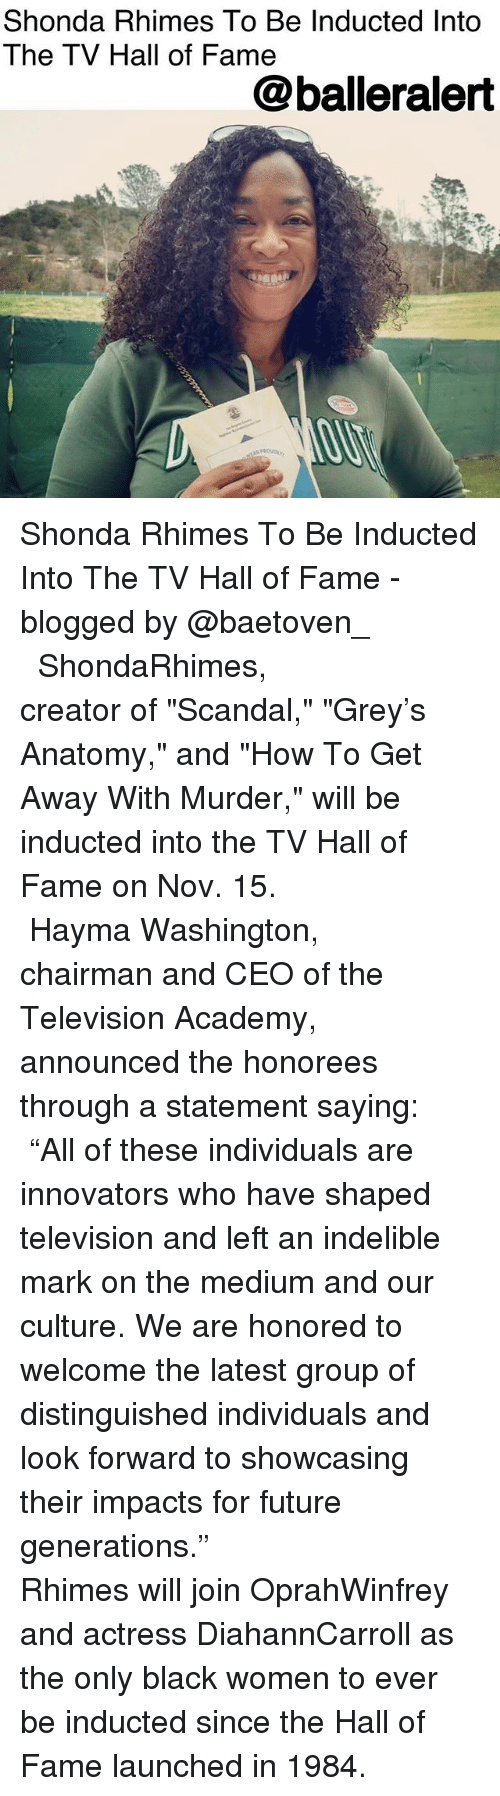 "Future, Memes, and Academy: Shonda Rhimes To Be Inducted Into  The TV Hall of Fame  @balleralert Shonda Rhimes To Be Inducted Into The TV Hall of Fame - blogged by @baetoven_ ⠀⠀⠀⠀⠀⠀⠀ ⠀⠀⠀⠀⠀⠀⠀ ⠀⠀⠀⠀⠀⠀⠀ ShondaRhimes, creator of ""Scandal,"" ""Grey's Anatomy,"" and ""How To Get Away With Murder,"" will be inducted into the TV Hall of Fame on Nov. 15. ⠀⠀⠀⠀⠀⠀⠀ ⠀⠀⠀⠀⠀⠀⠀ ⠀⠀⠀⠀⠀⠀⠀ Hayma Washington, chairman and CEO of the Television Academy, announced the honorees through a statement saying: ⠀⠀⠀⠀⠀⠀⠀ ""All of these individuals are innovators who have shaped television and left an indelible mark on the medium and our culture. We are honored to welcome the latest group of distinguished individuals and look forward to showcasing their impacts for future generations."" ⠀⠀⠀⠀⠀⠀⠀ ⠀⠀⠀⠀⠀⠀⠀ ⠀⠀⠀⠀⠀⠀⠀ Rhimes will join OprahWinfrey and actress DiahannCarroll as the only black women to ever be inducted since the Hall of Fame launched in 1984."